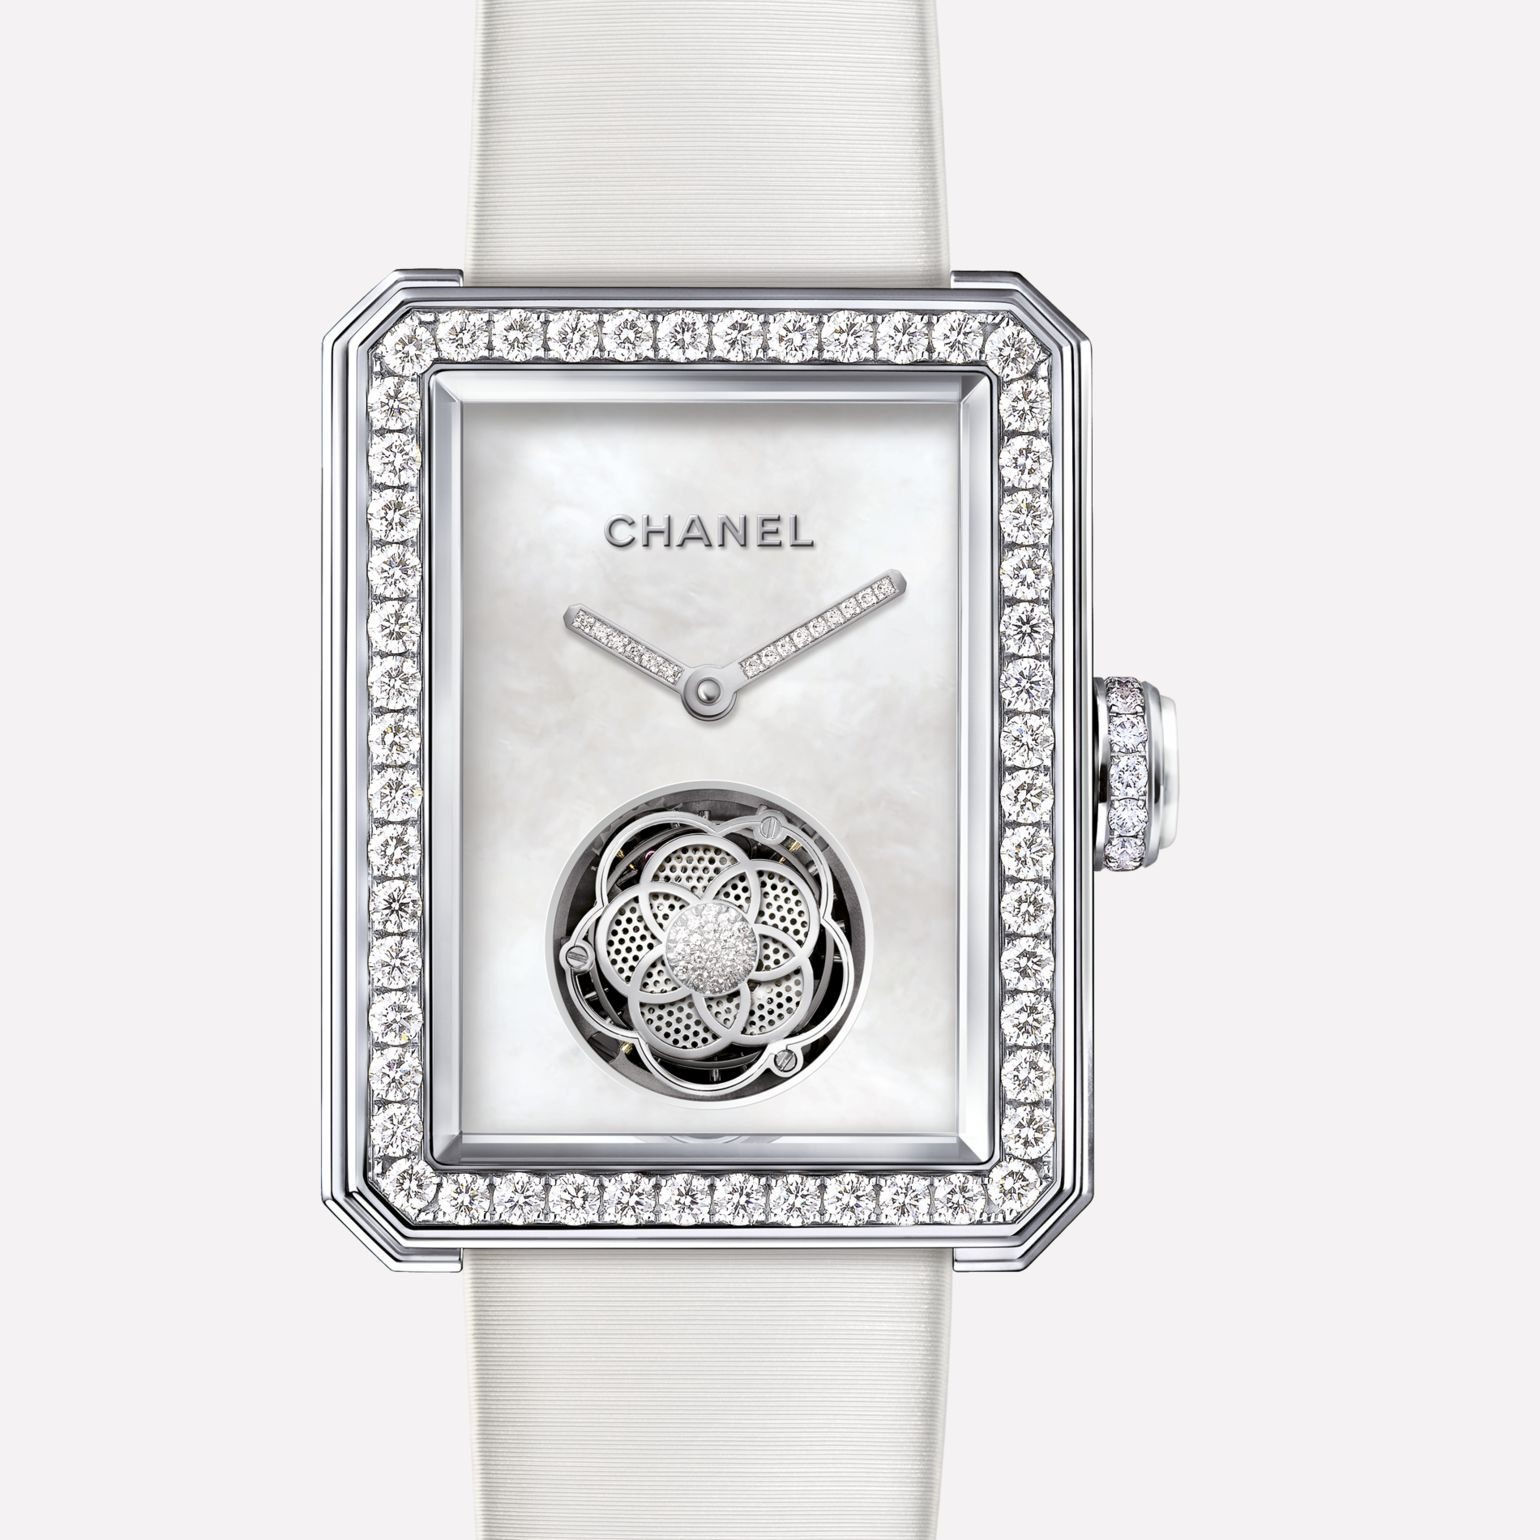 Première Flying Tourbillon Watch White gold, bezel set with brilliant-cut diamonds, mother-of-pearl dial